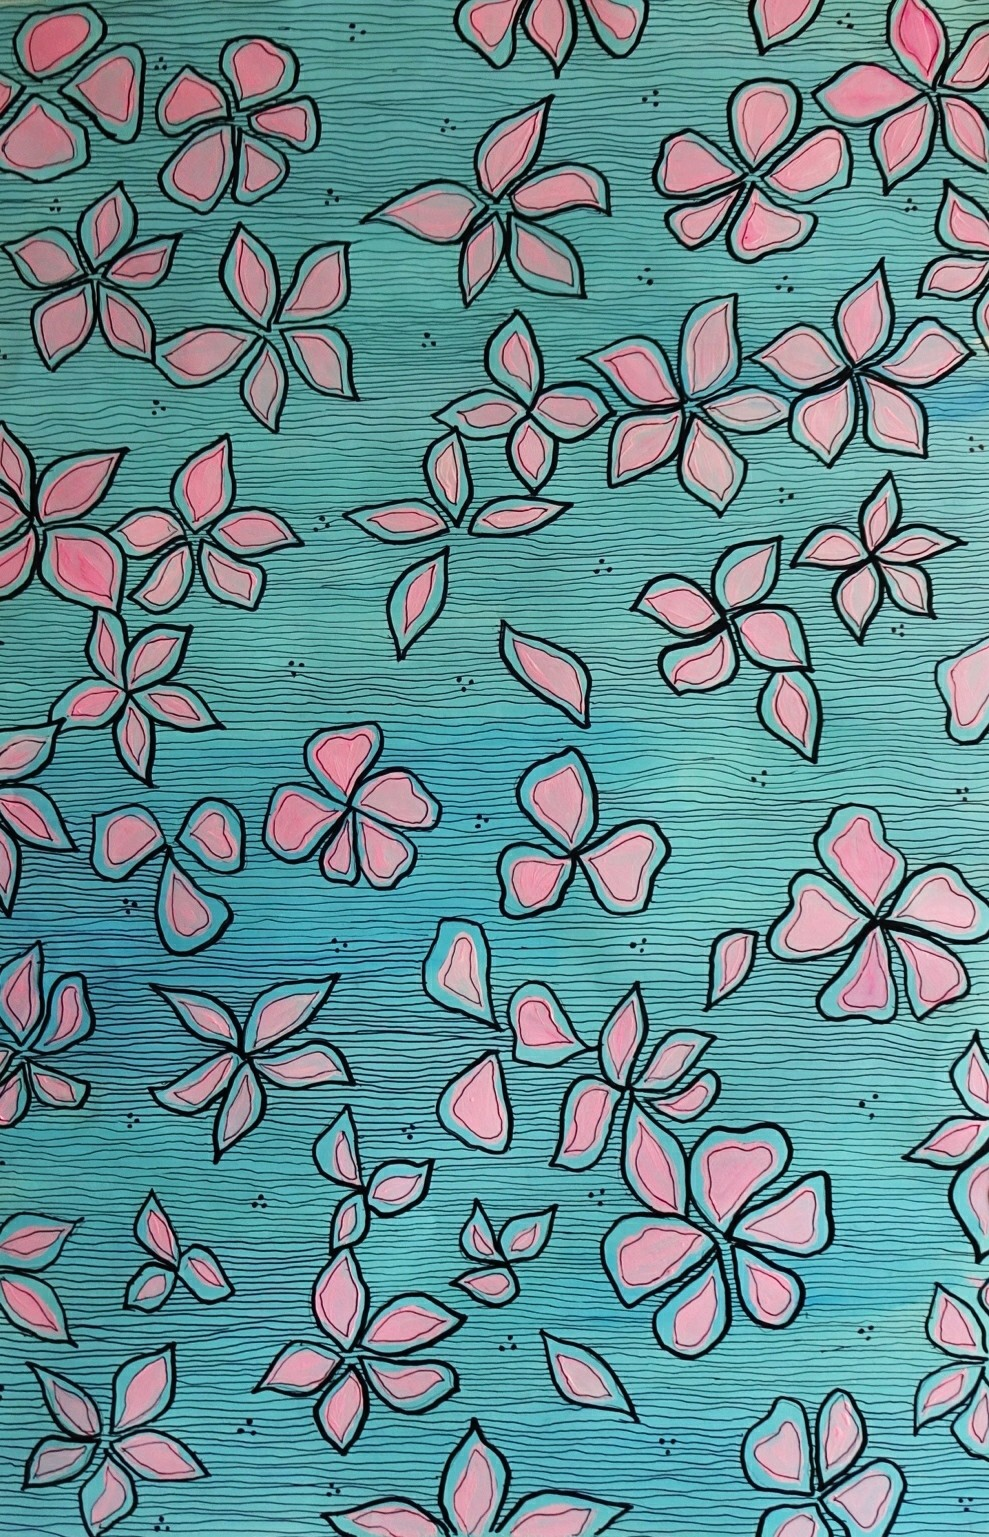 Blue Florals by Anissha Deshpande, Decorative Drawing, Acrylic & Ink on Paper, Breaker Bay color